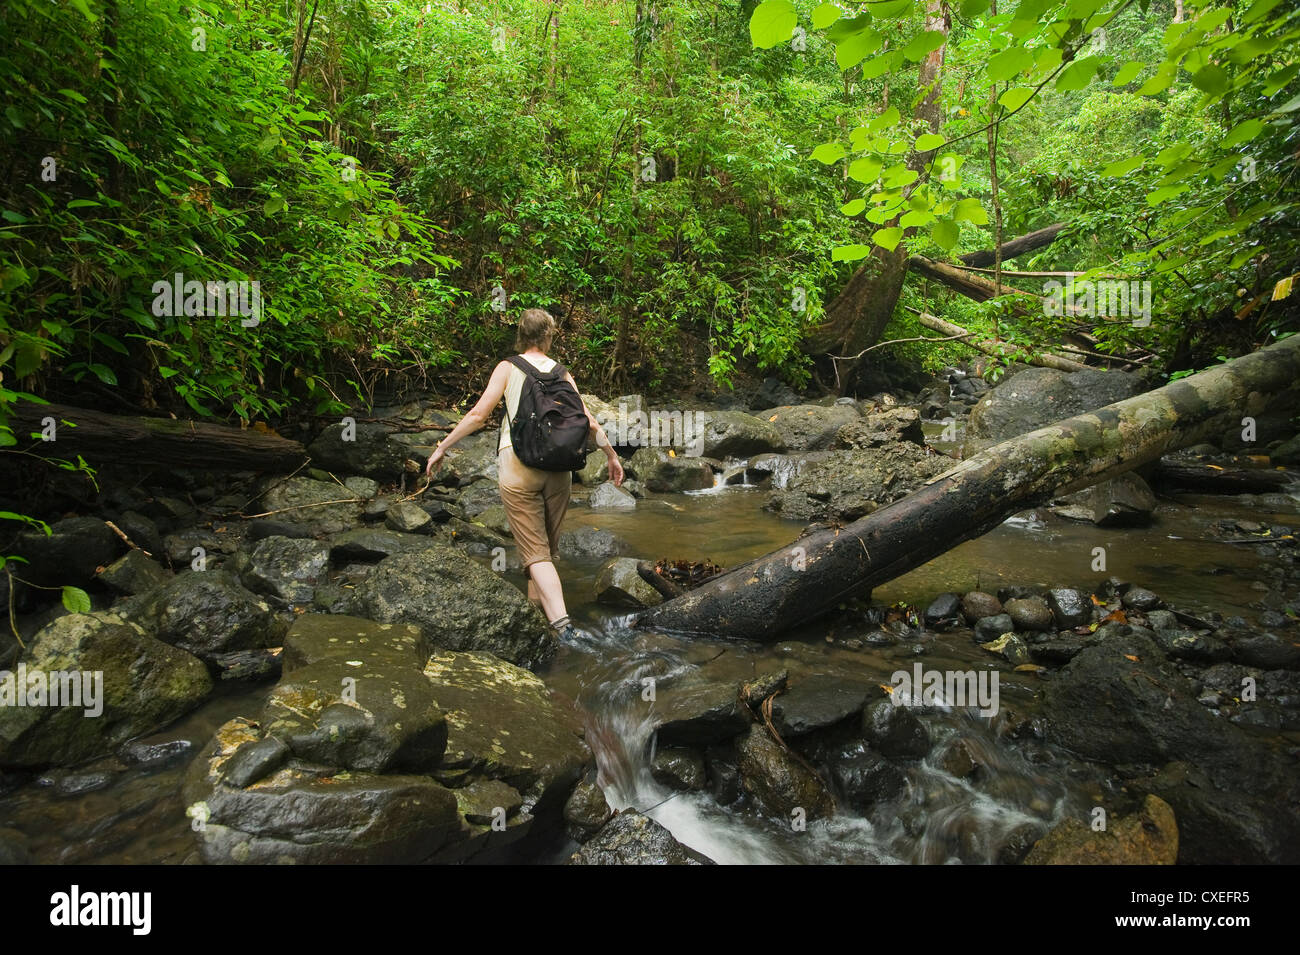 Marcy Summers in small stream, rainforest, Tanah Merah, Mt. Tompotika area, Central Sulawesi, Indonesia - Stock Image